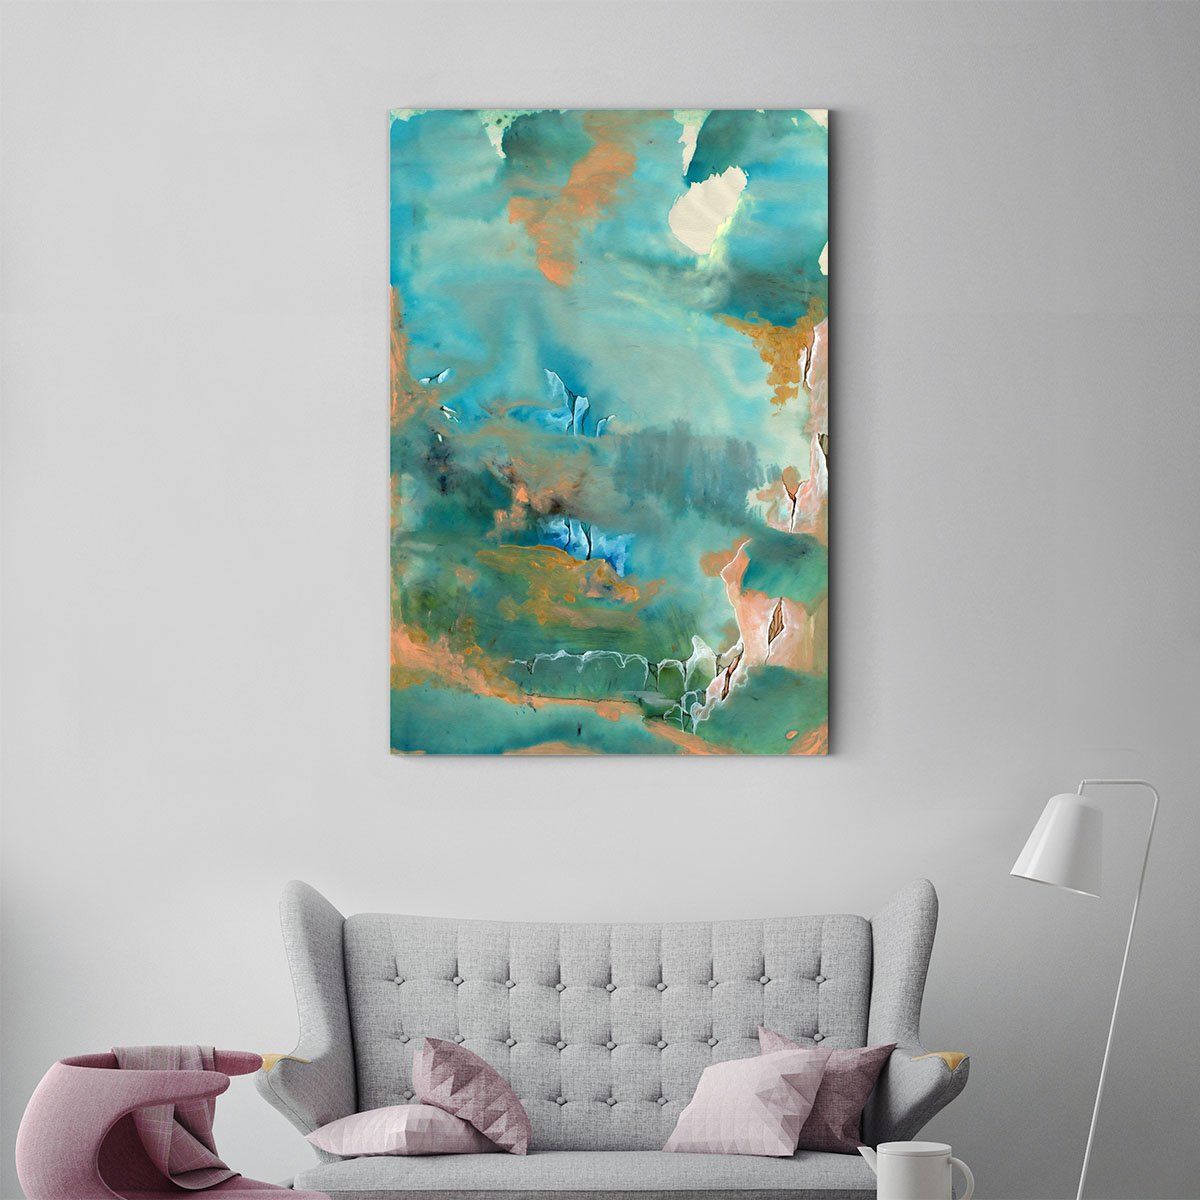 Surrounded mountains abstract decorative painting 001